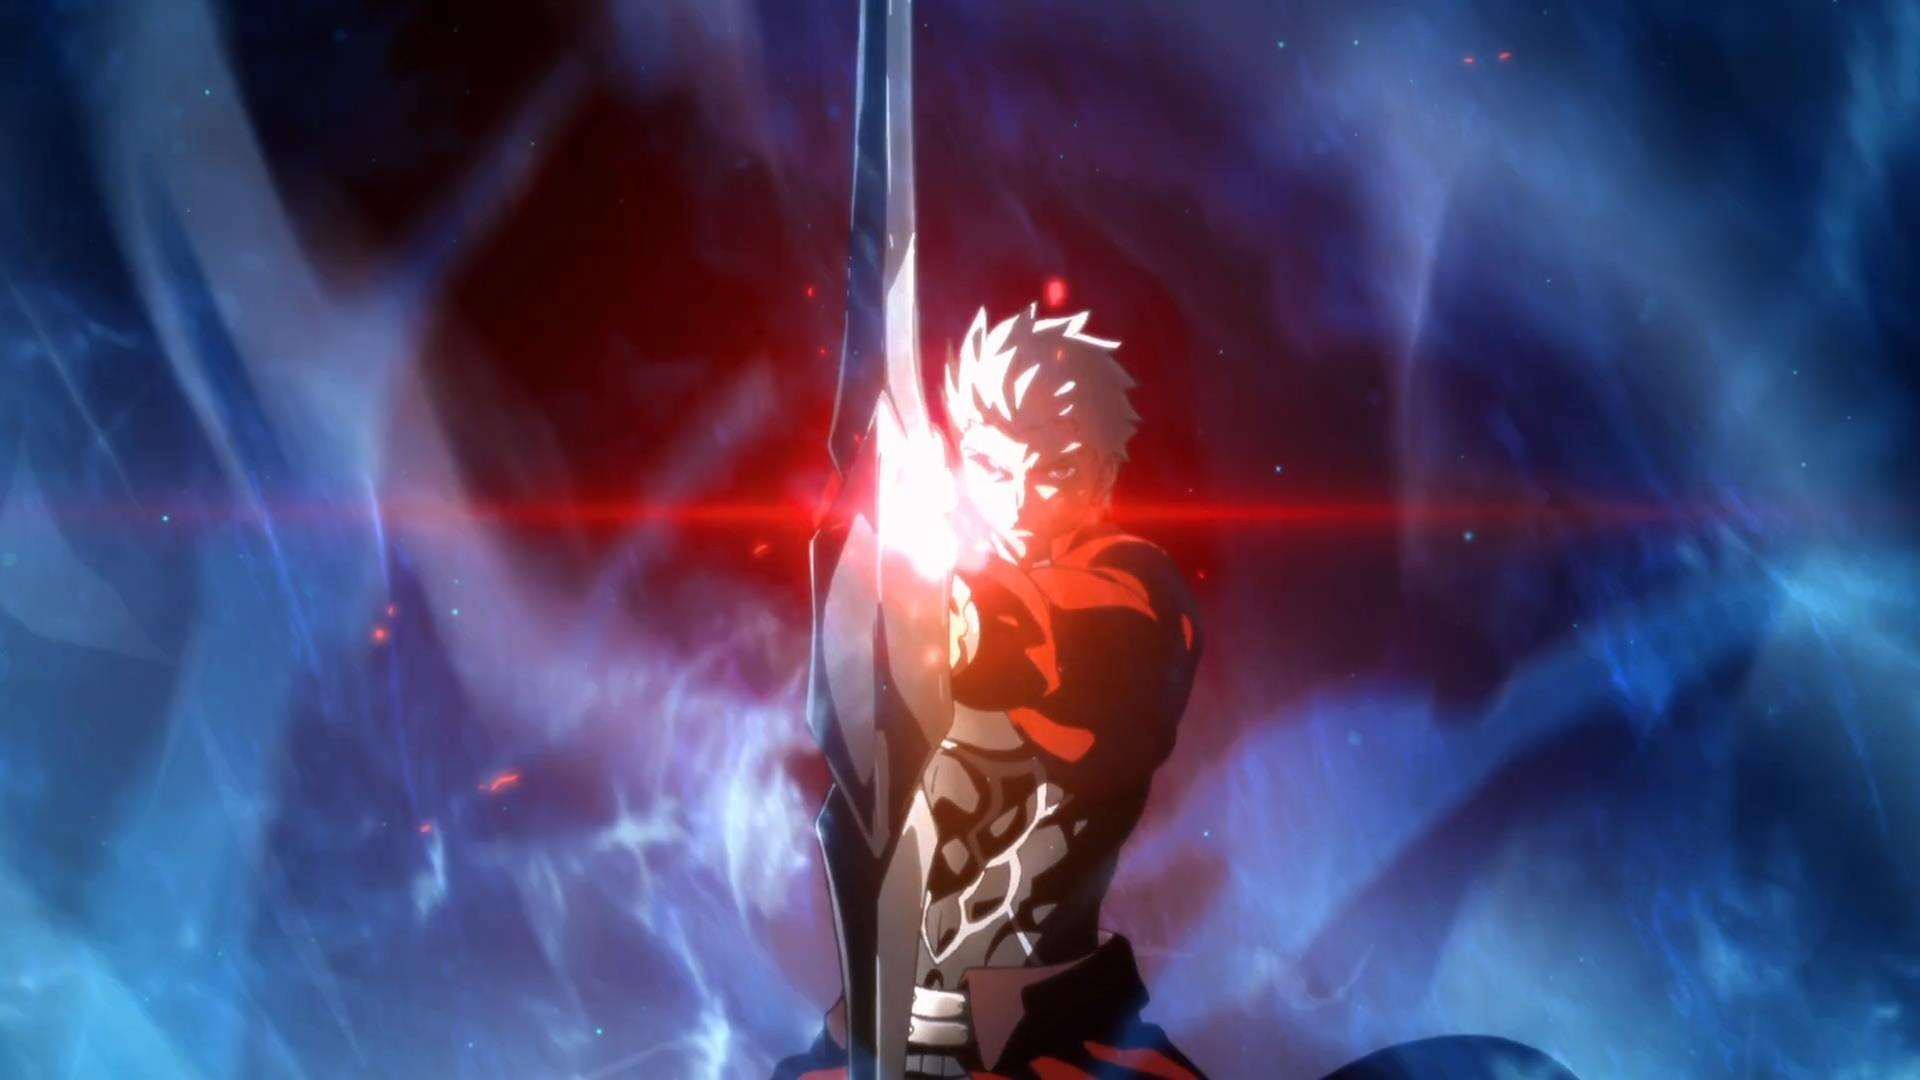 archer fate/stay night wallpapers - wallpaper cave